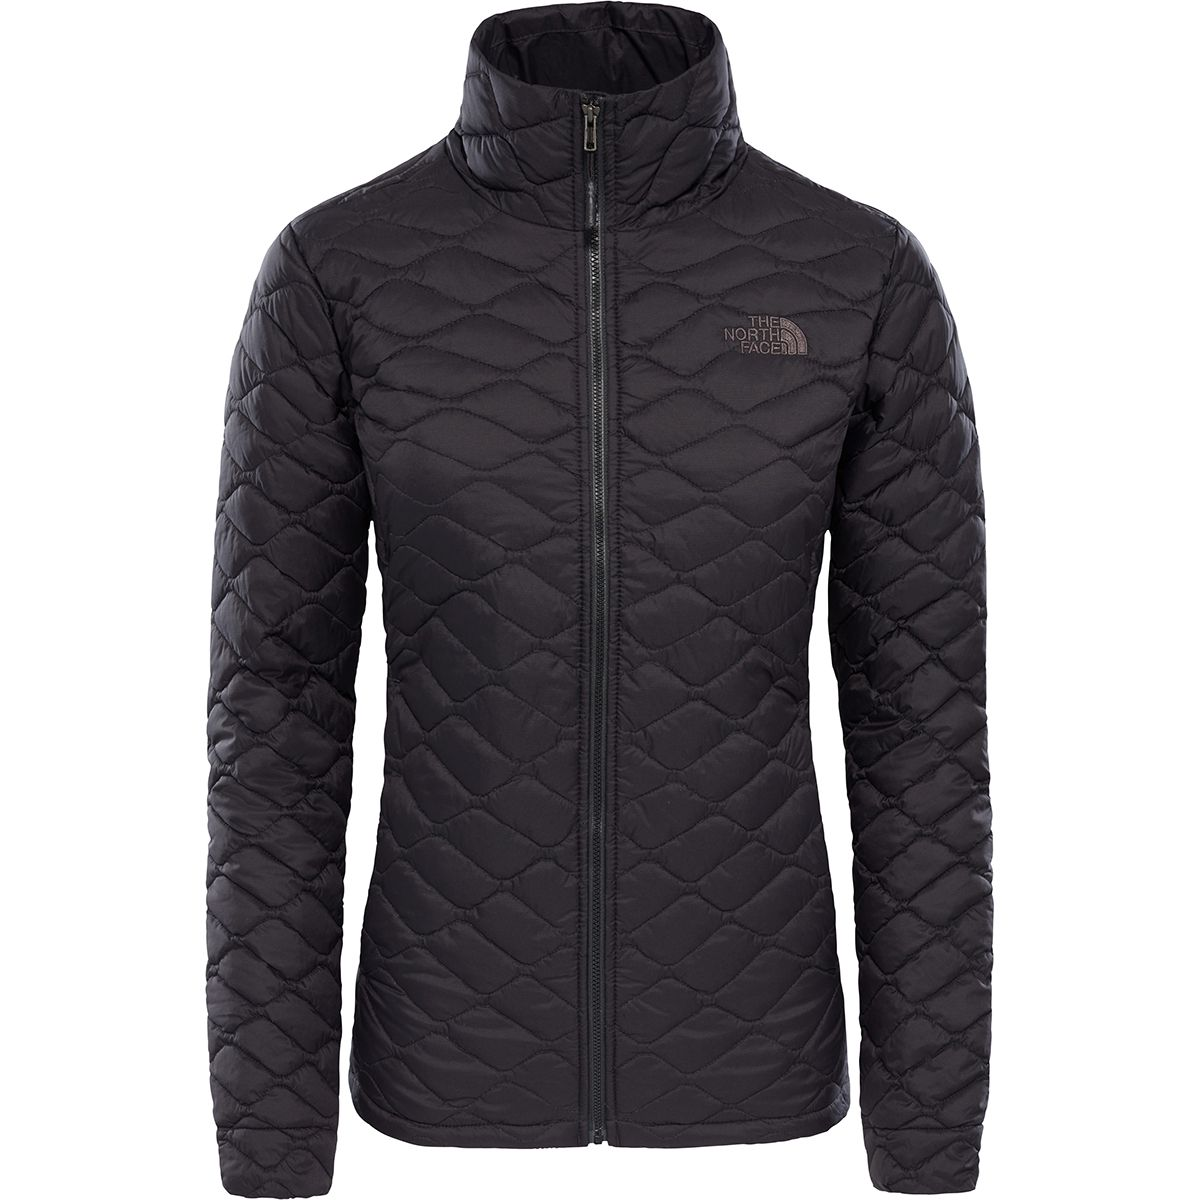 The North Face Damen Thermoball Hoodie Jacke (Größe XS, Schwarz) | Isolationsjacken > Damen